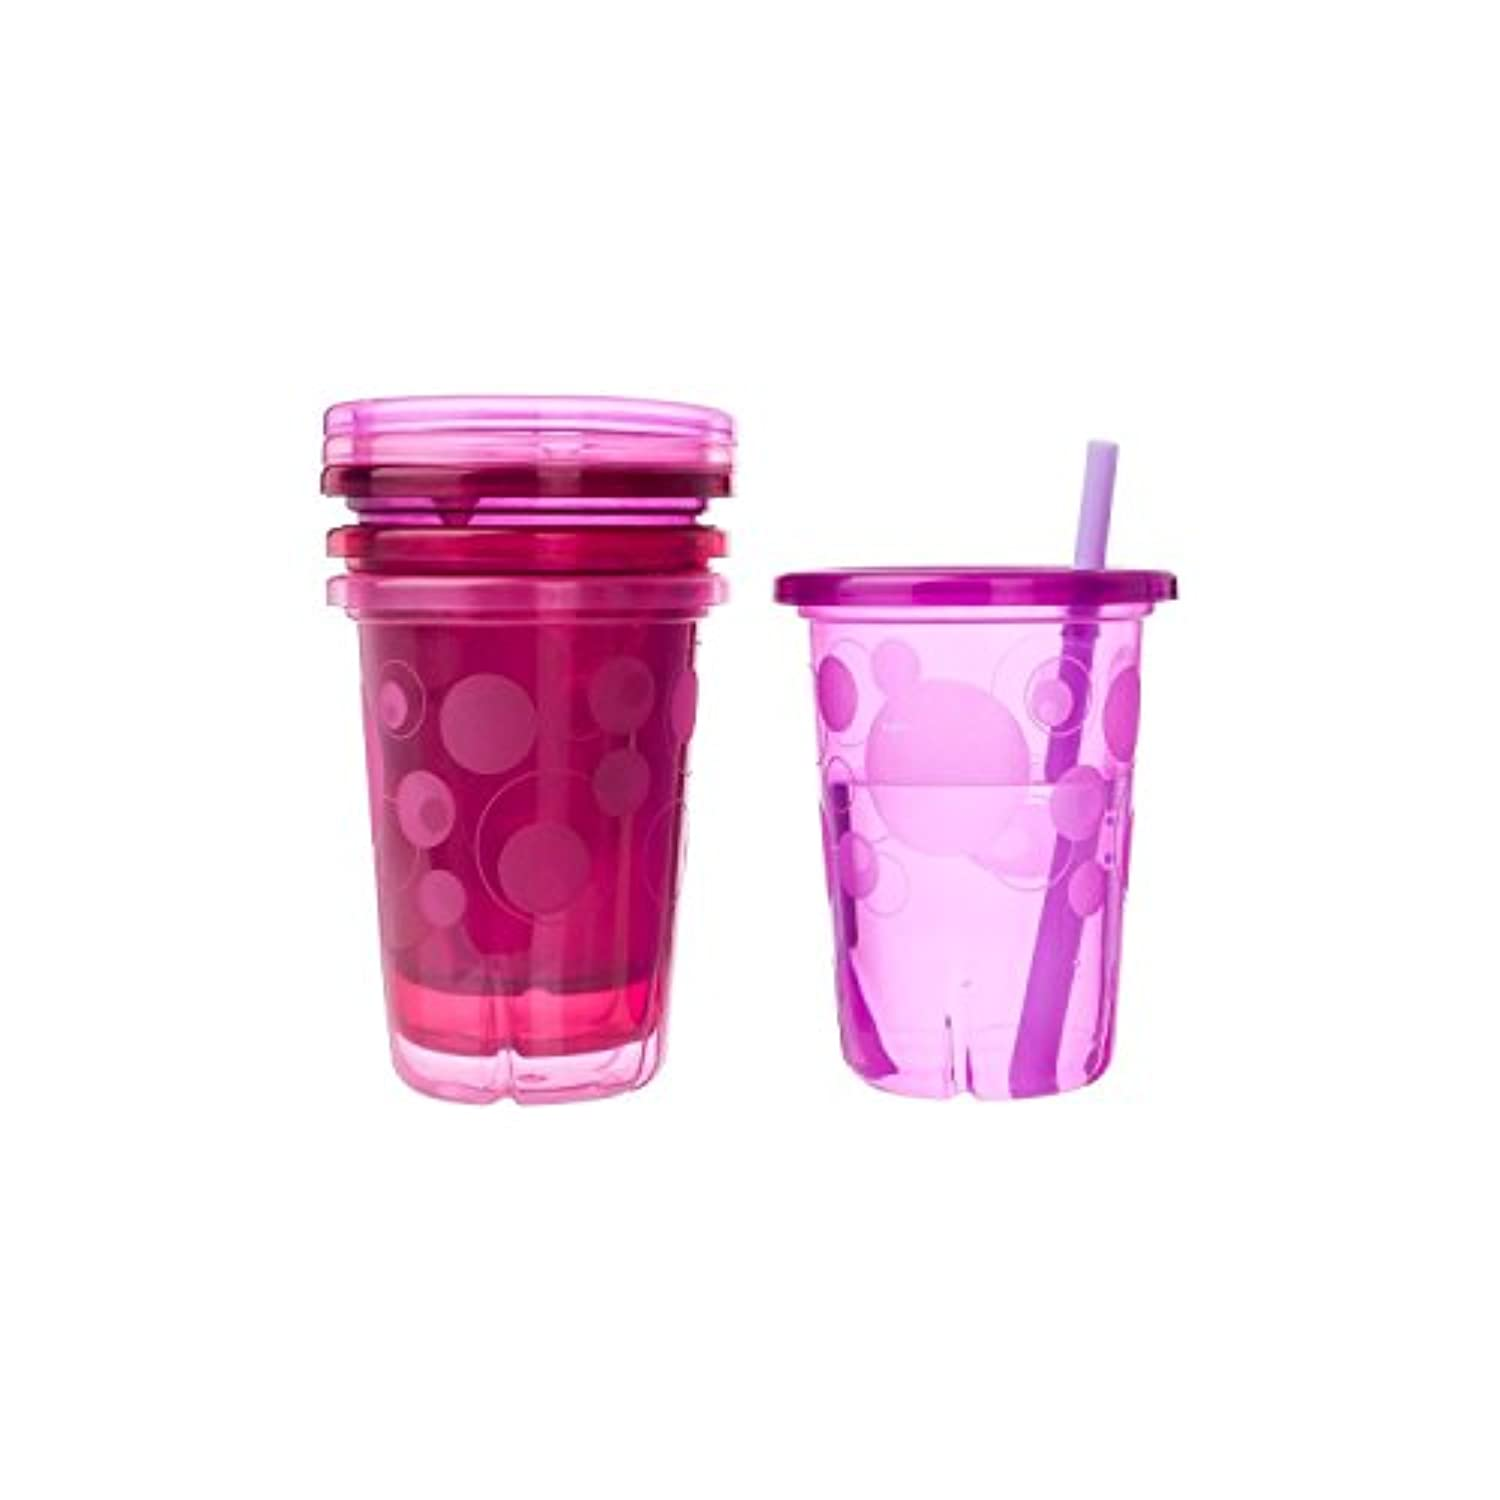 The First Years Take & Toss Spill-Proof Straw Cups - Pink Colors - 1 Set by The First Years